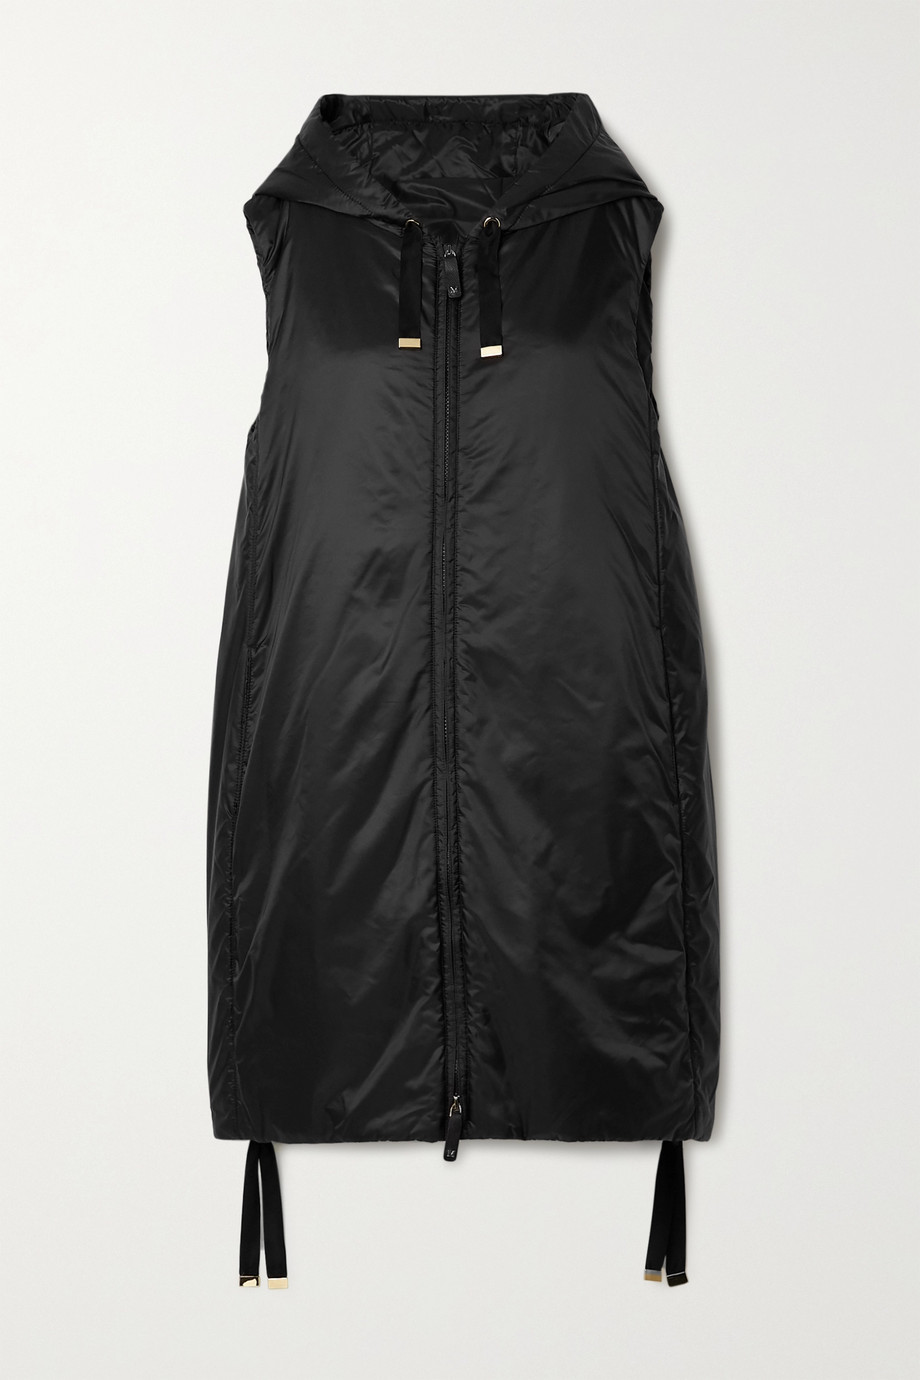 Max Mara The Cube Cameluxe hooded padded shell vest